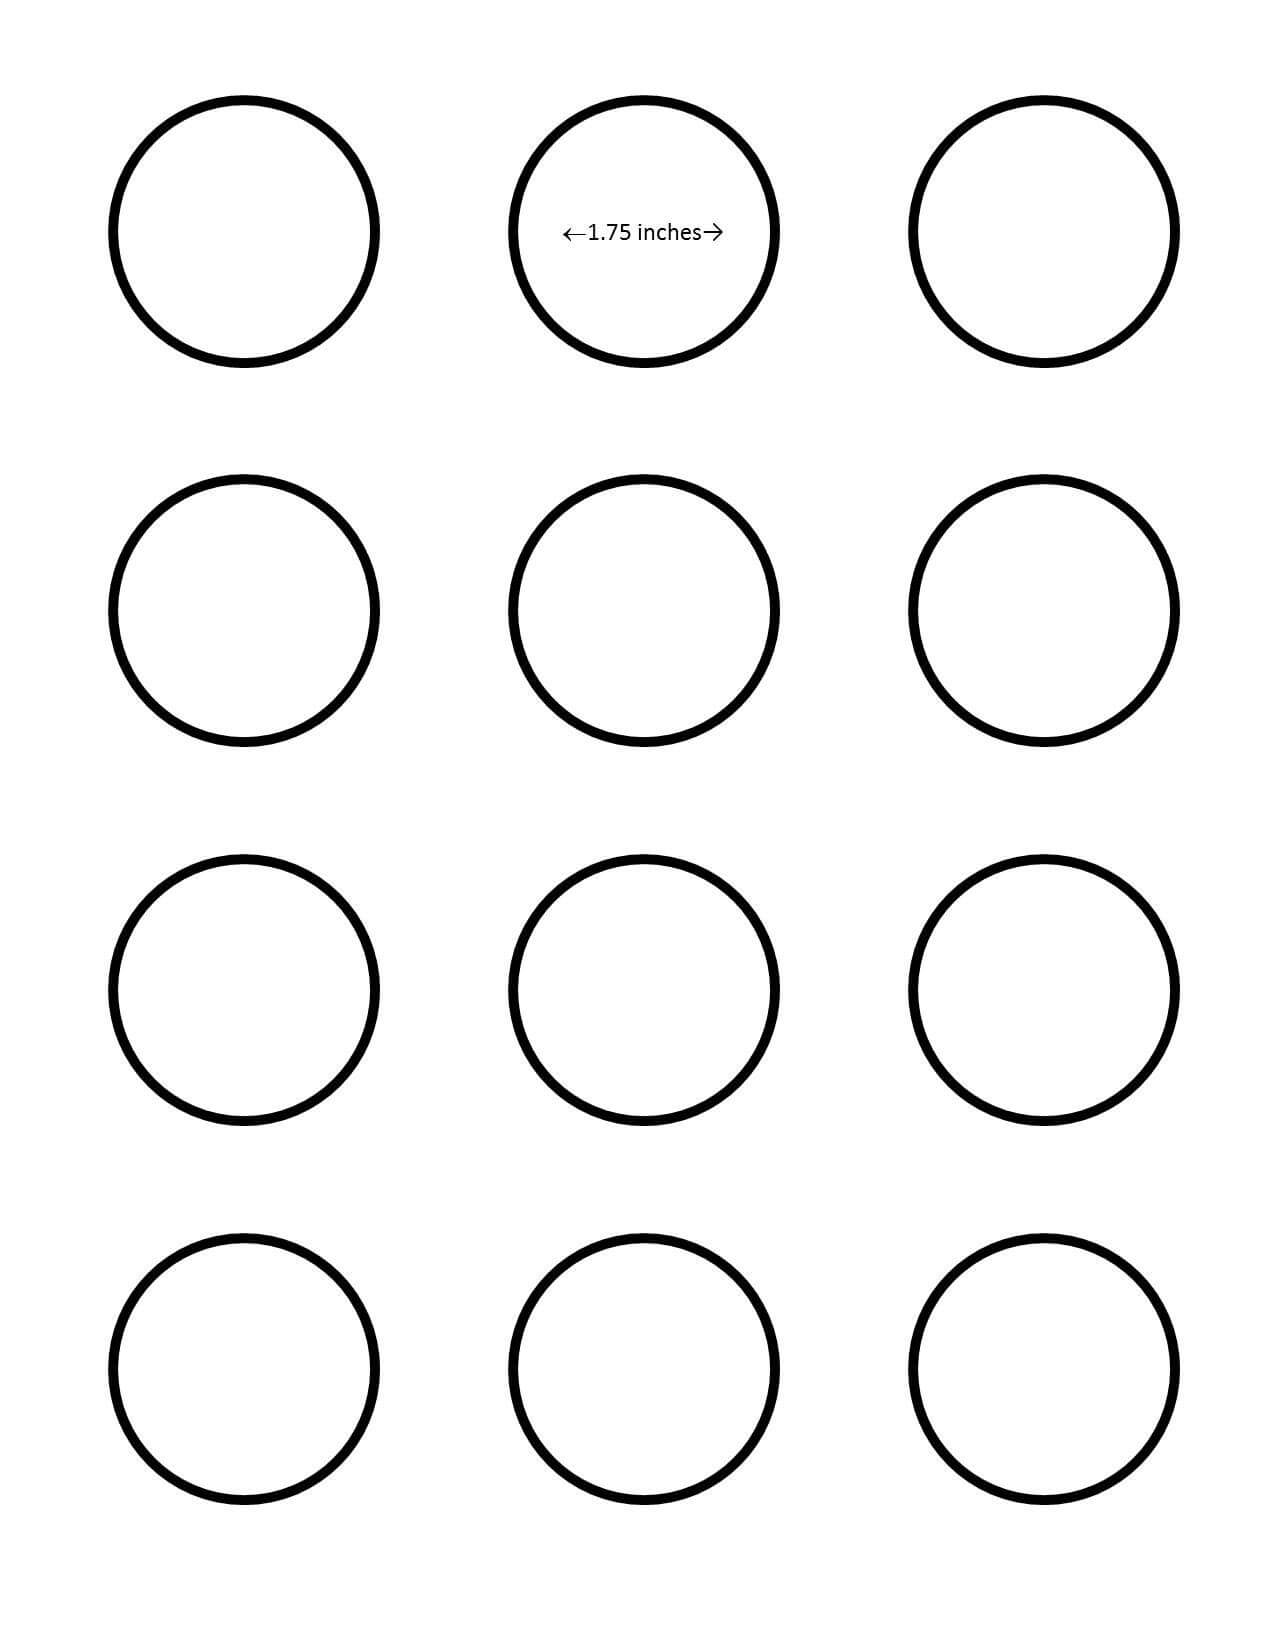 009 Template Ideas Inch Best 1 Circle 1/2 Word Round Label 5 Inside 2 Inch Round Label Template